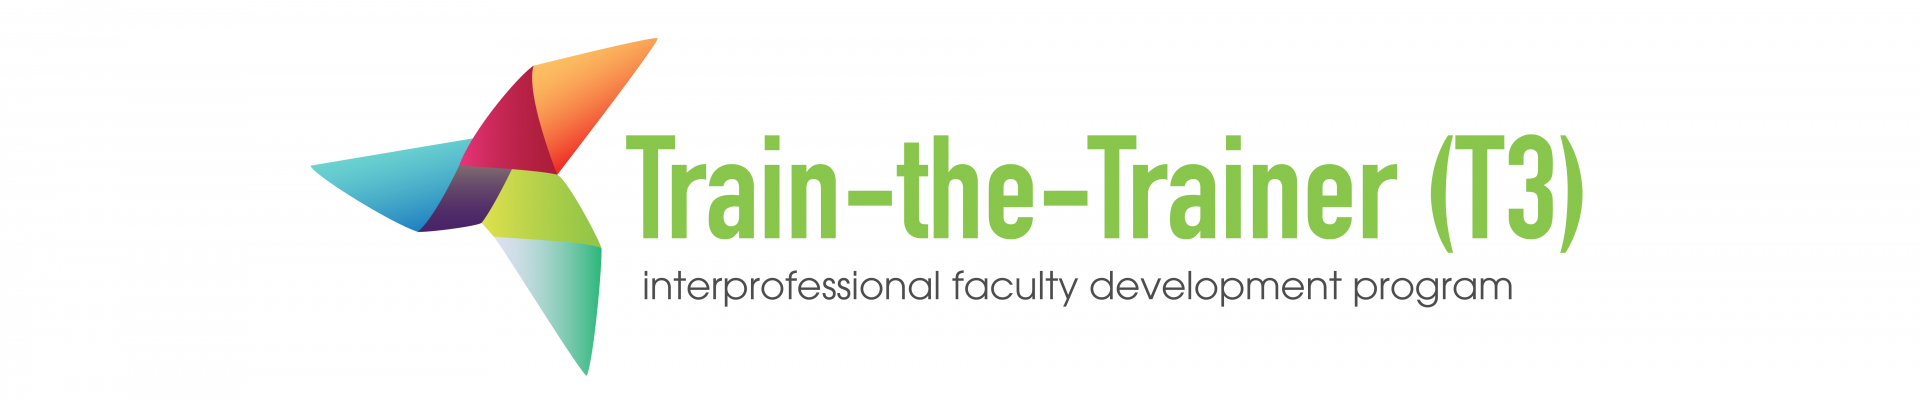 T3 TRAIN-THE-TRAINER FACULTY DEVELOPMENT PROGRAM: Interprofessional Education Faculty Development for Educators